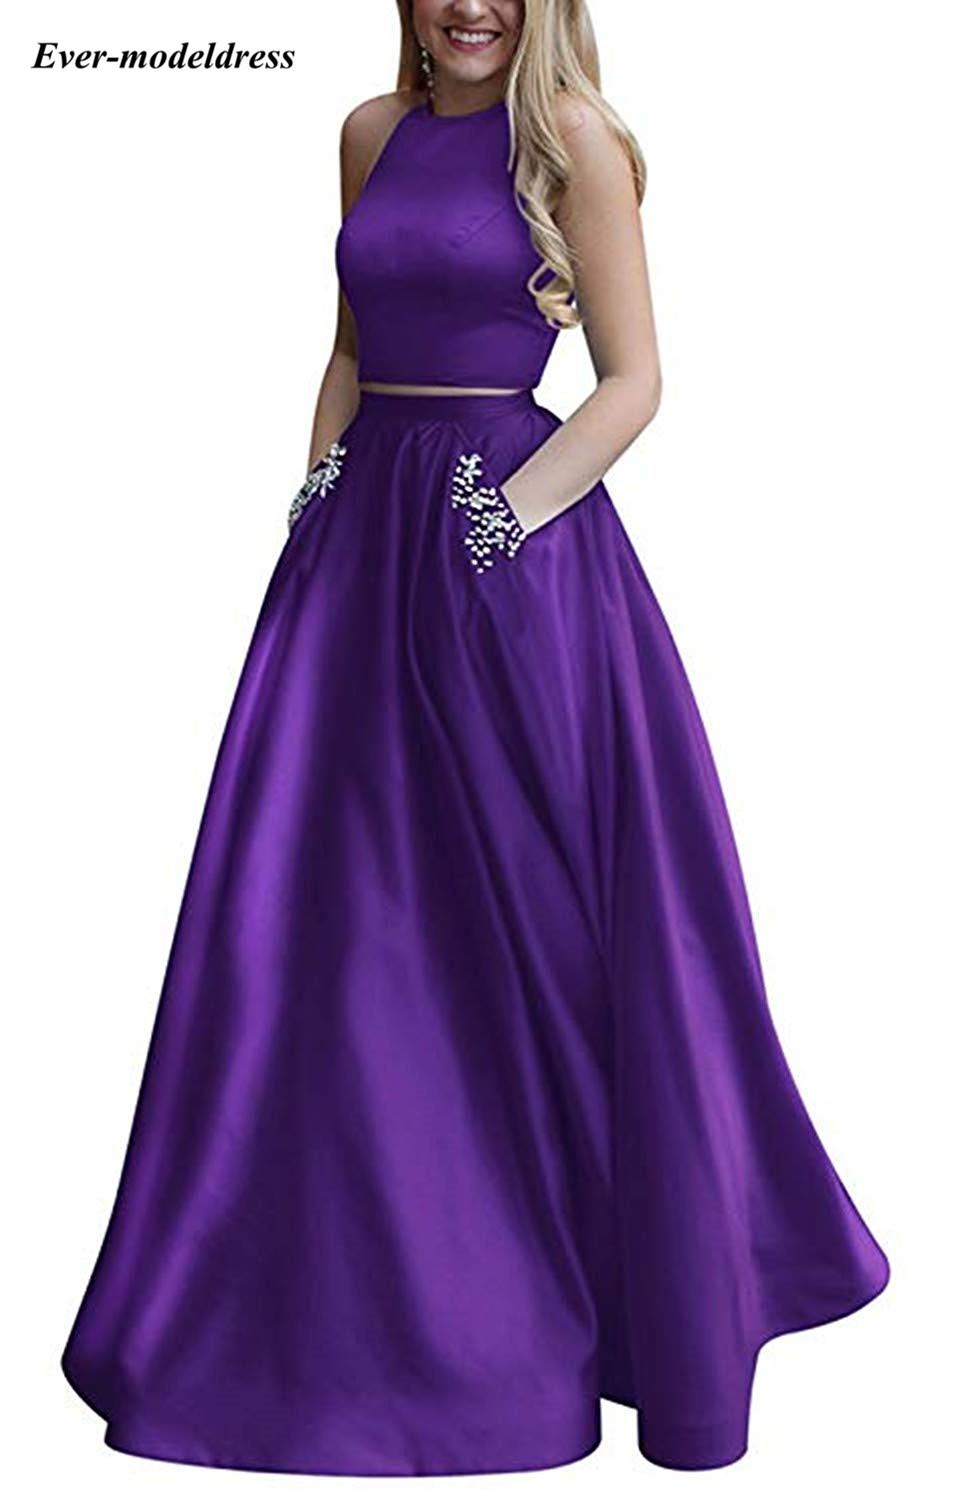 2019 Modest Two Pieces   Prom     Dresses   with Pockets Jewel Open Back Crystals A Line Long Satin Evening Party Gowns Robe De Soiree